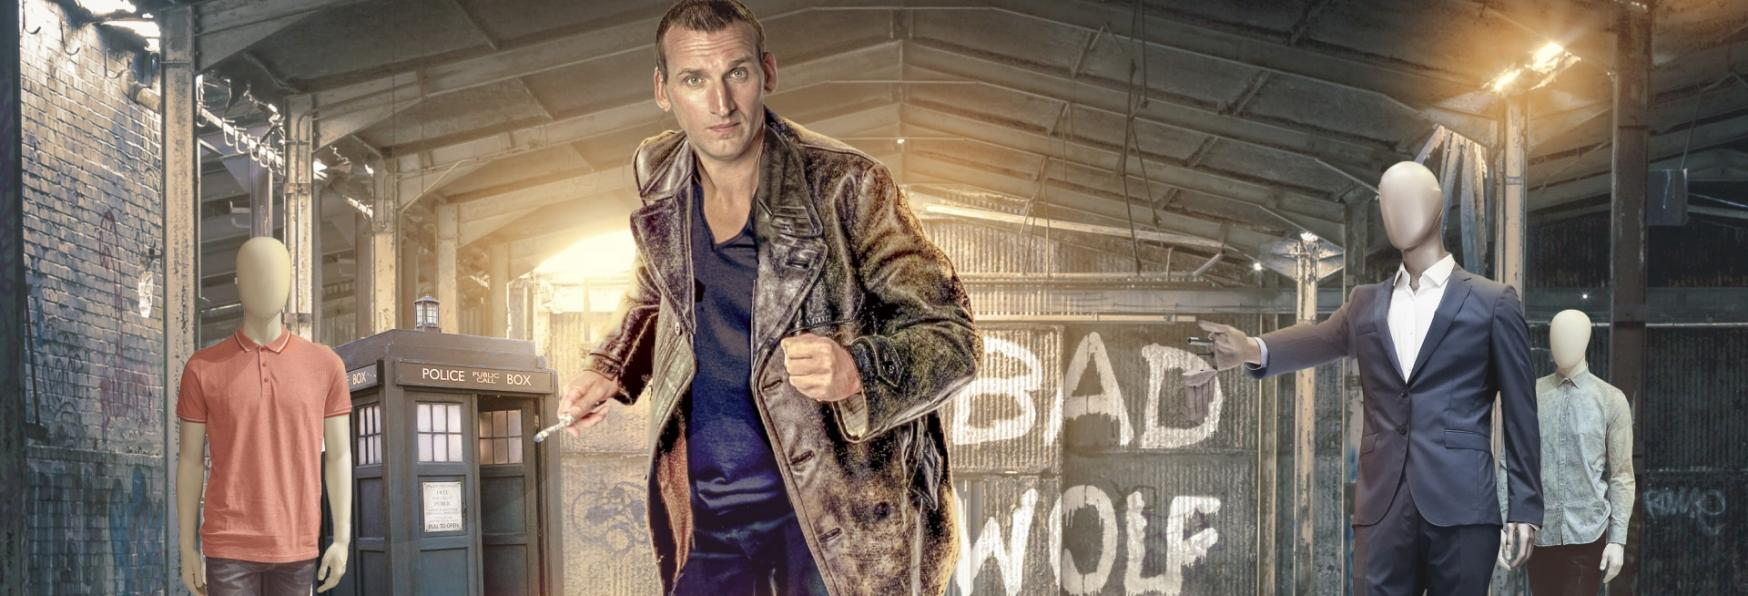 Doctor Who: Christopher Eccleston spiega come mai non apparve in The Day of the Doctor